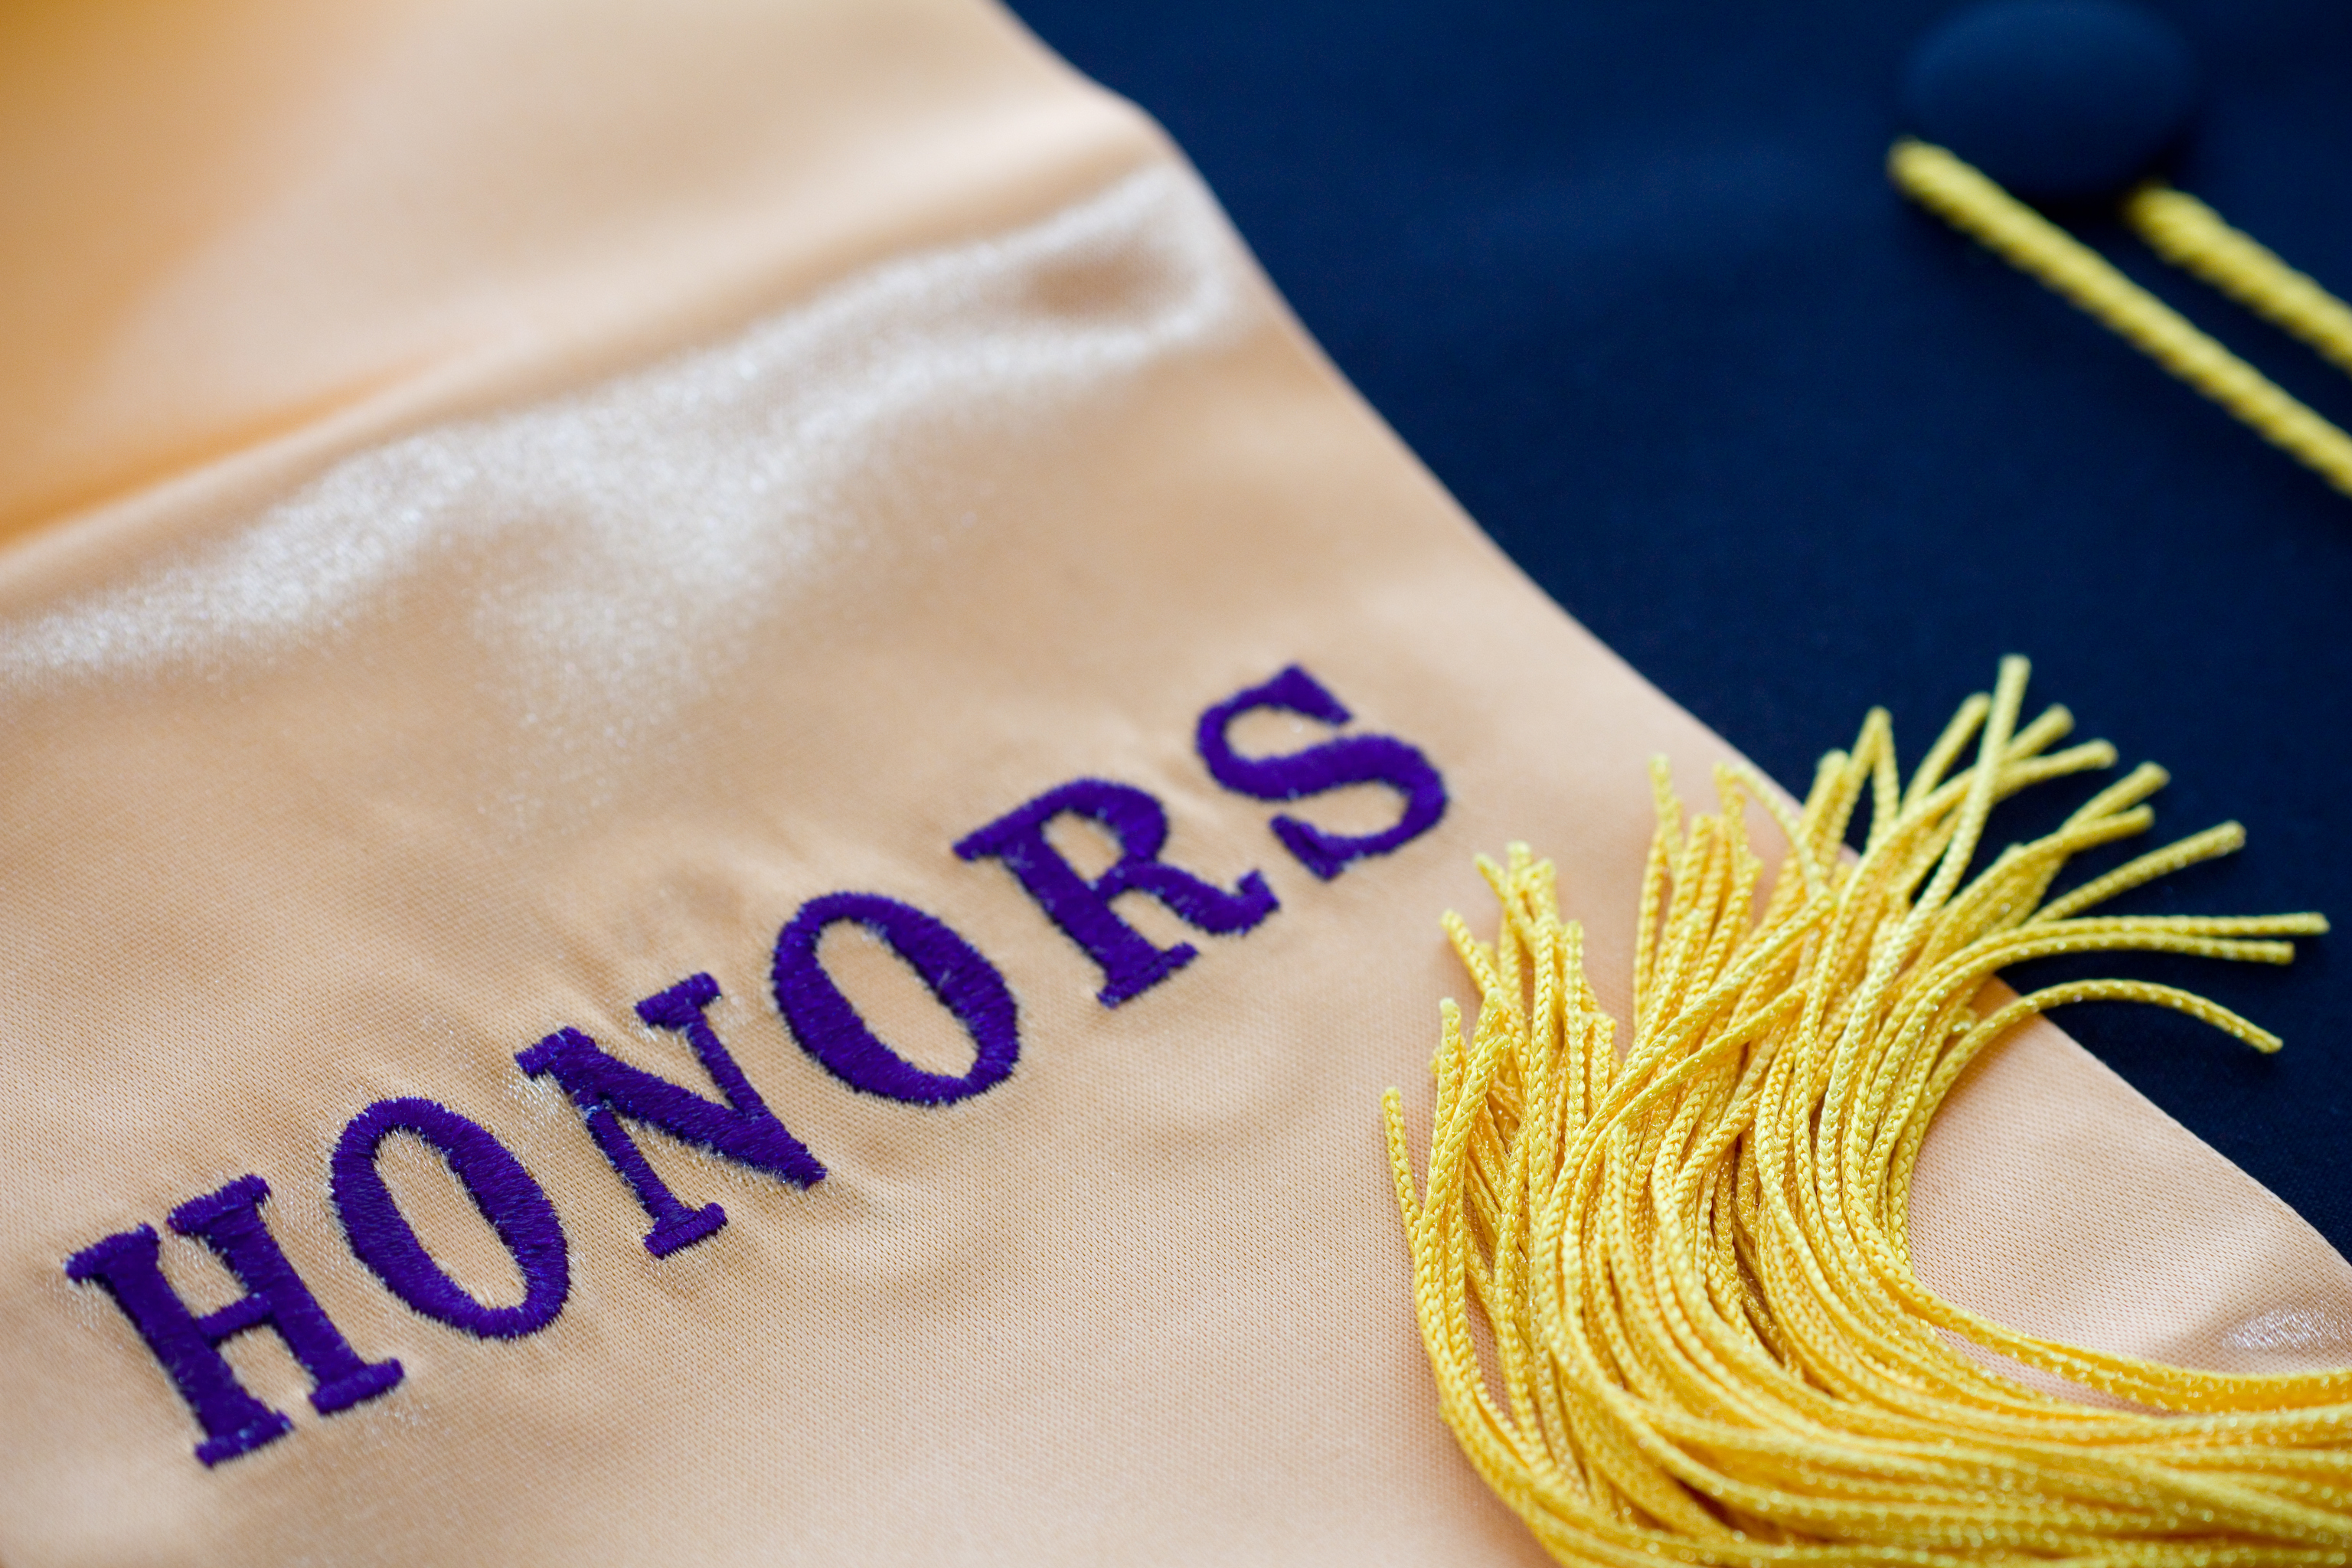 """""""HONORS"""" written on a graduation stole with a yellow tassel laid over the fabric."""